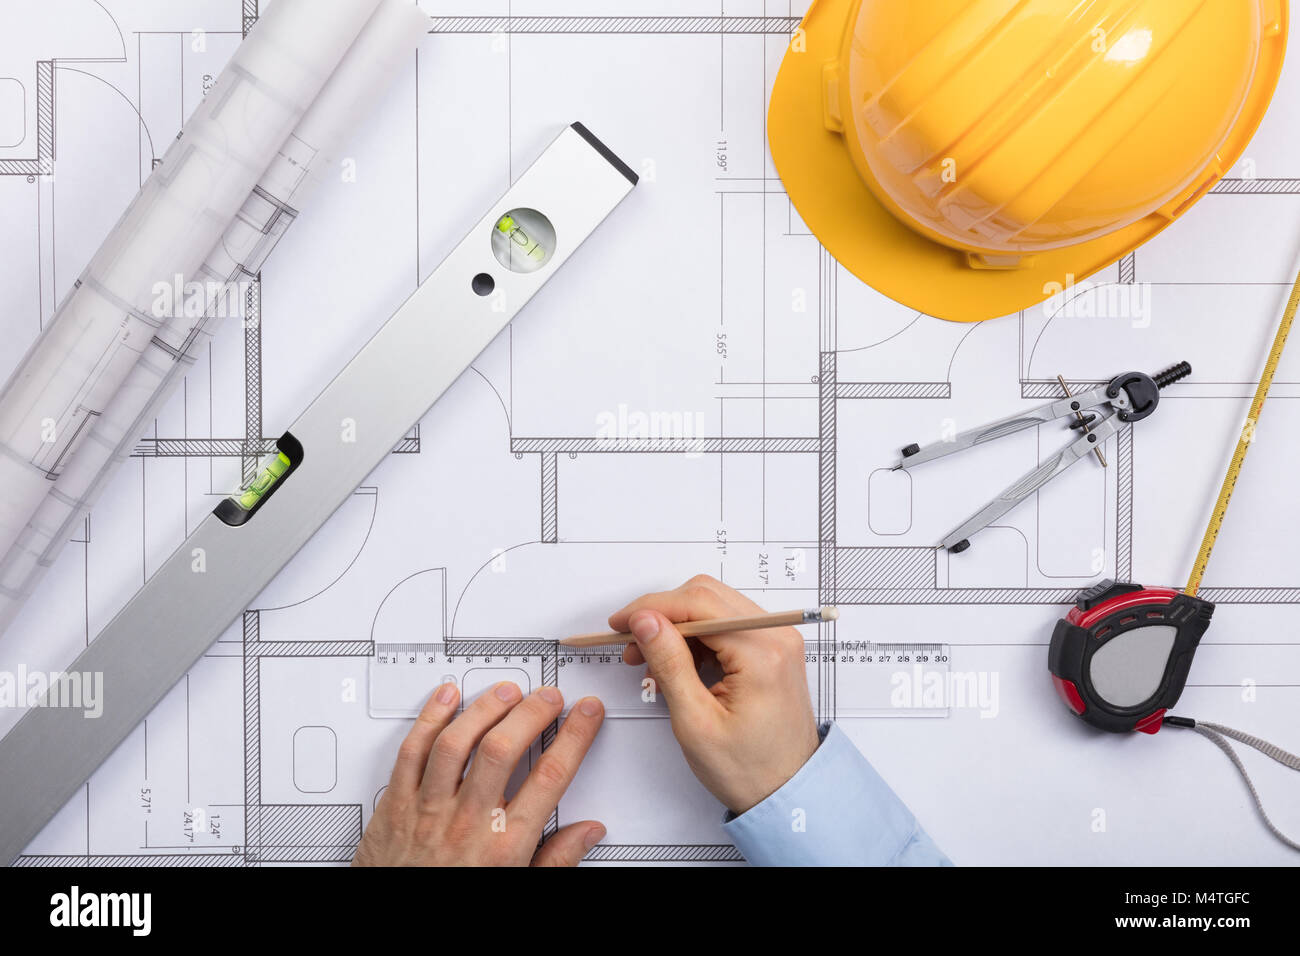 Civil engineering architecture structure stock photos civil high angle view of architect hands working on blueprint stock image malvernweather Choice Image